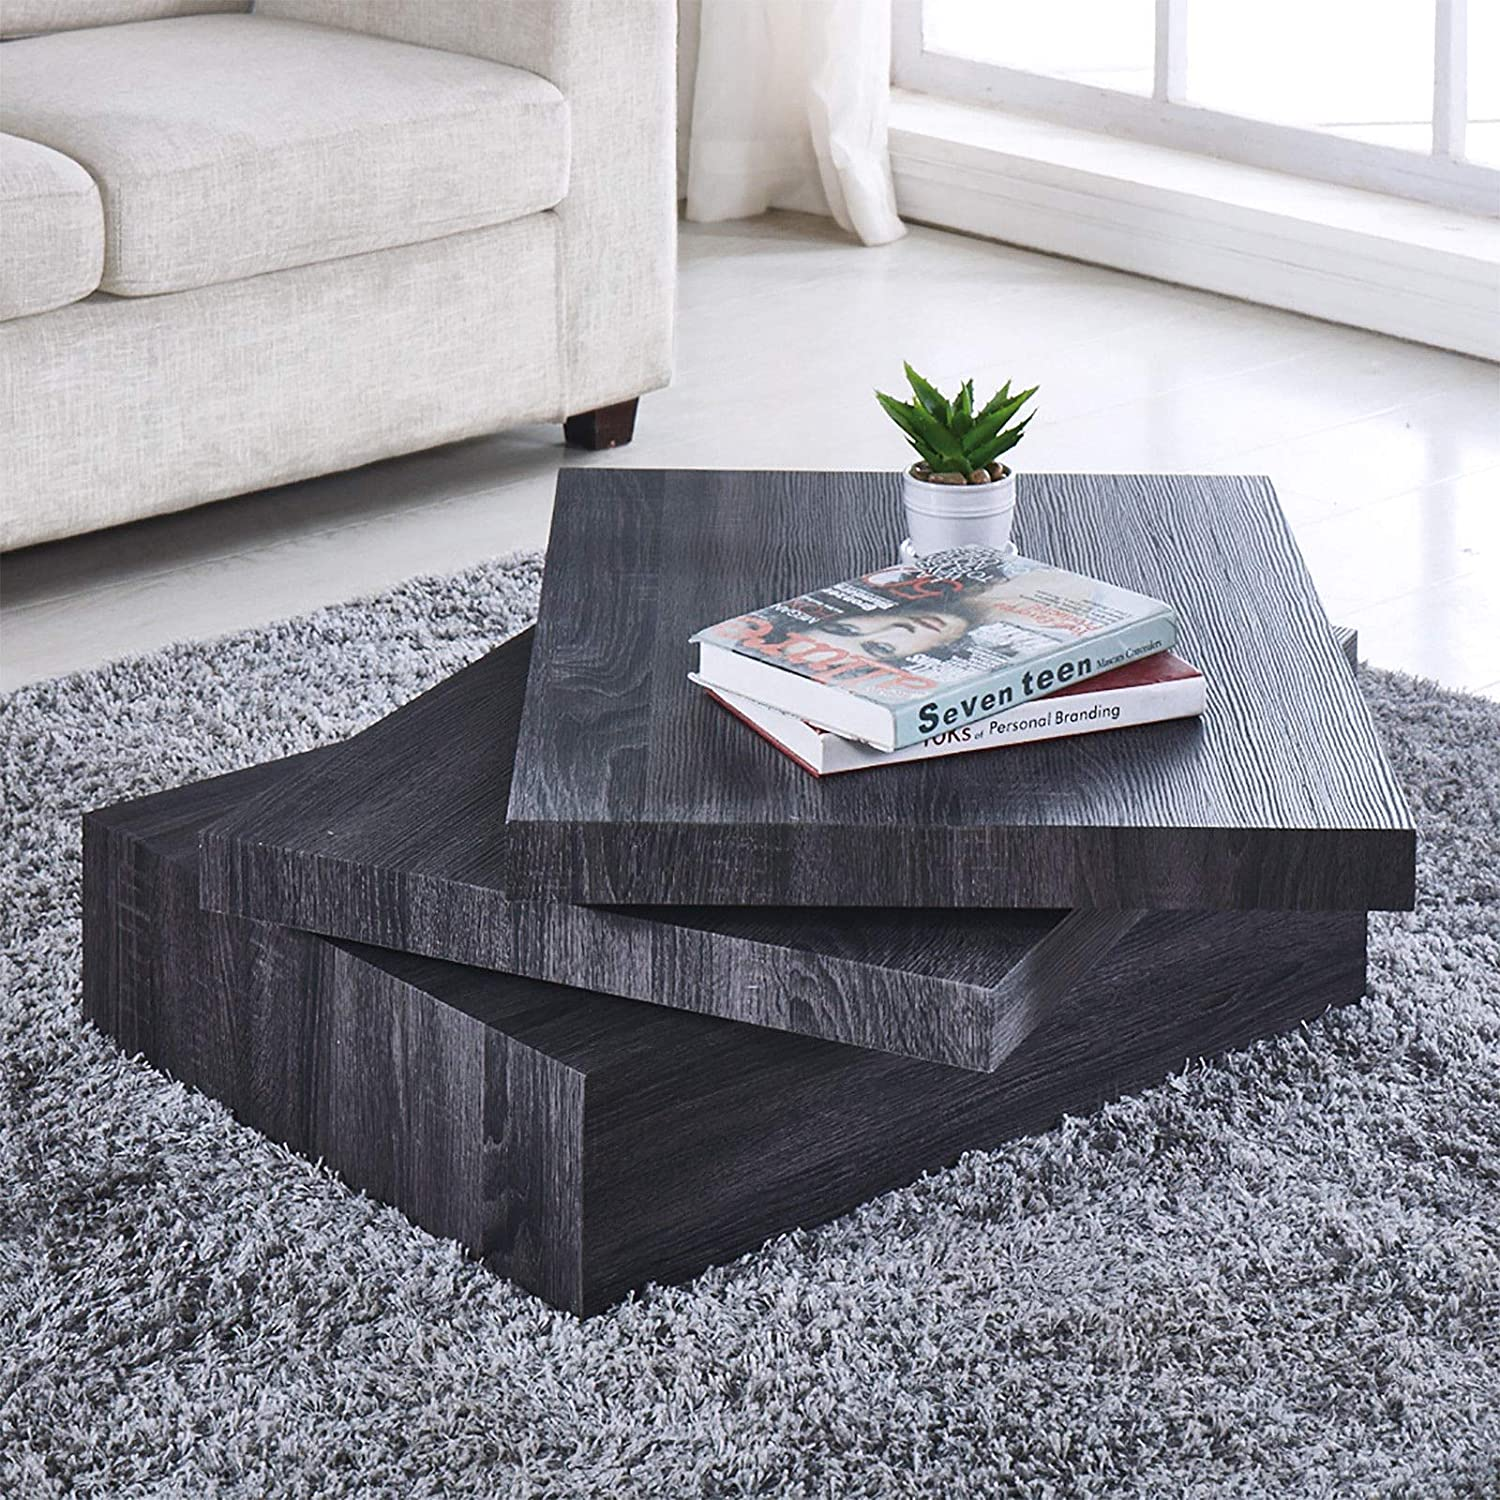 27 Best Coffee Tables In 2020 That Work With Any Room Styles